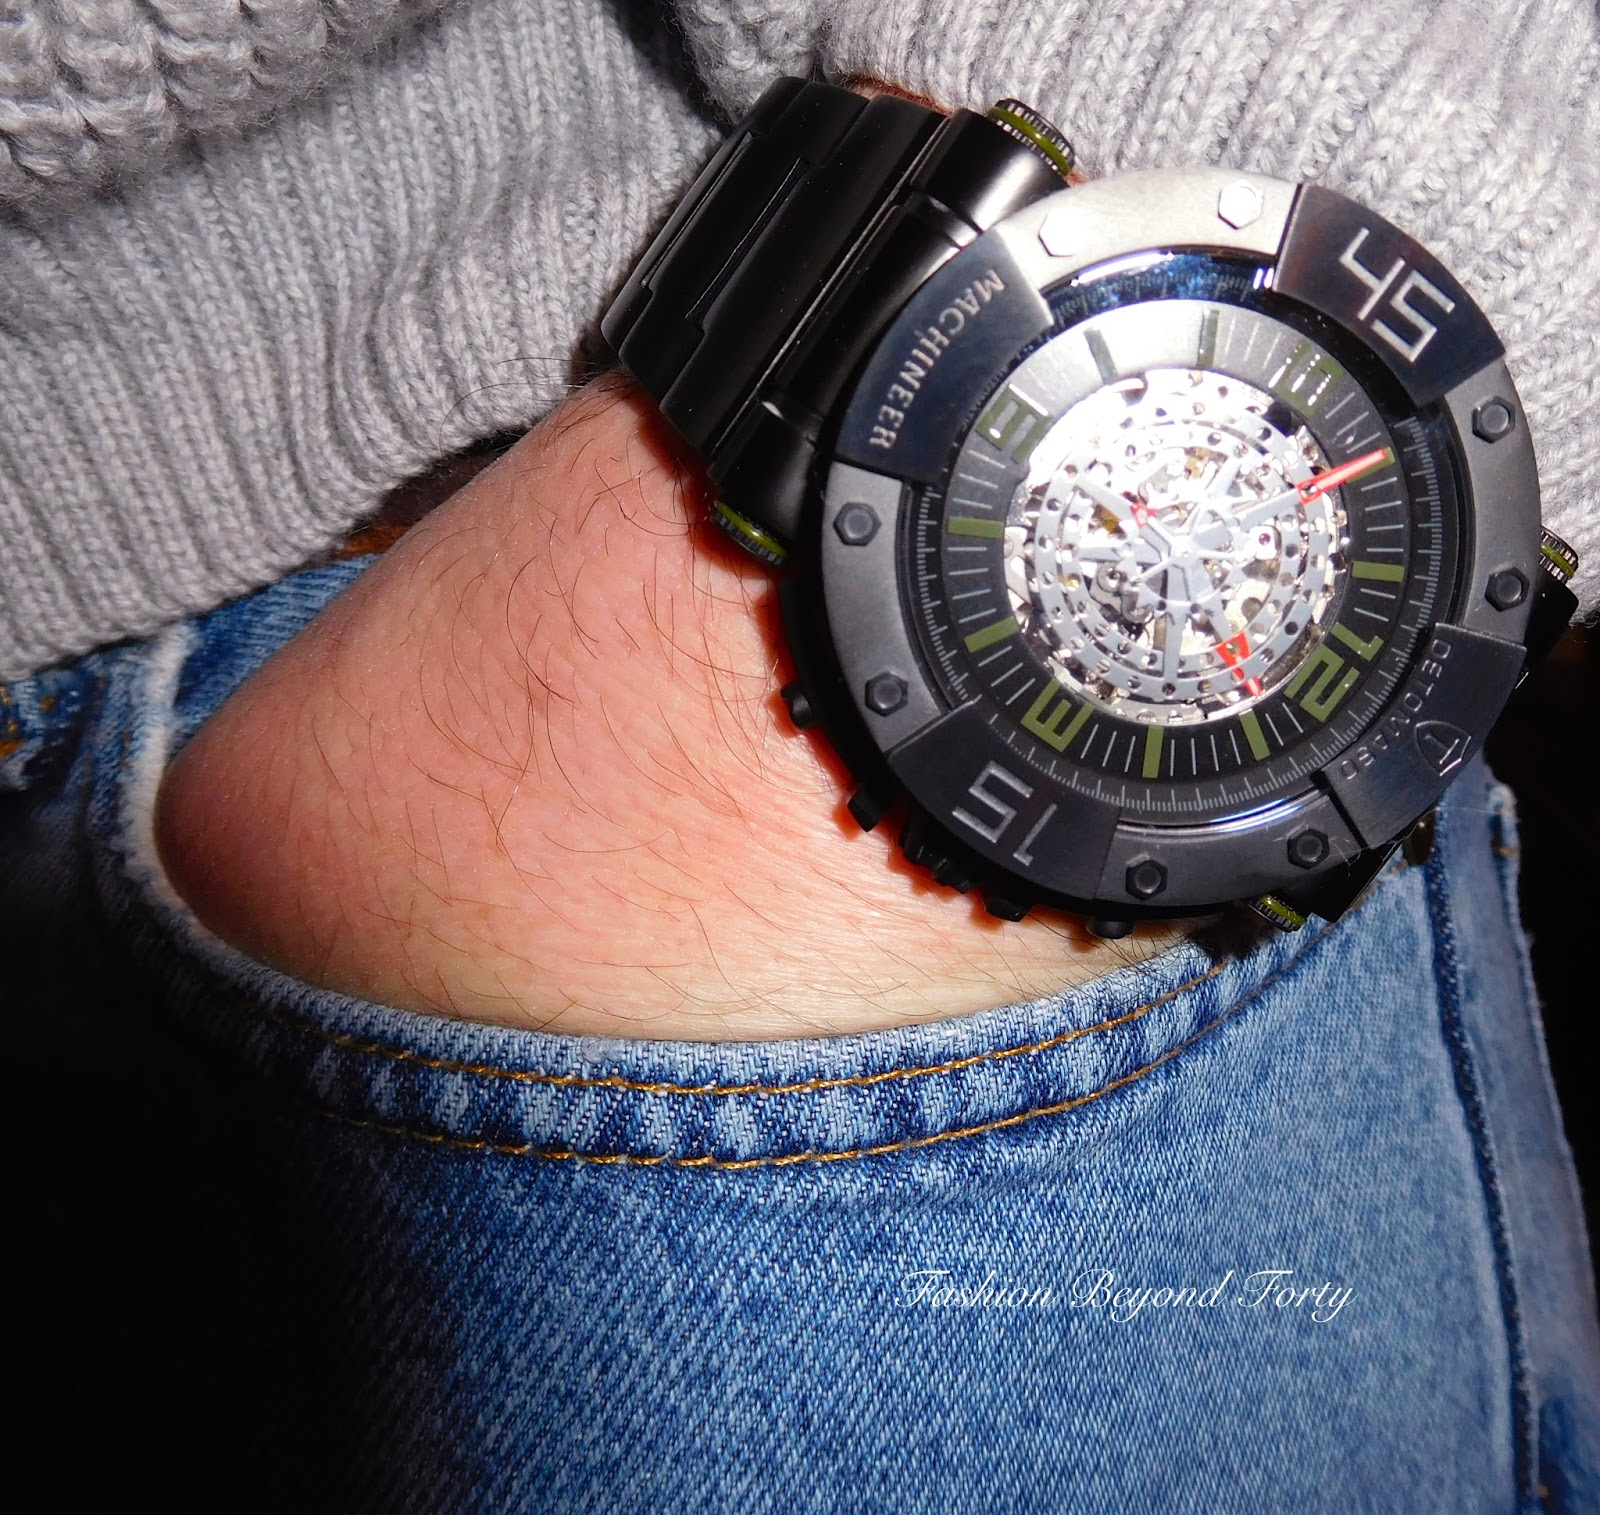 DeTomaso Machineer Watch Review